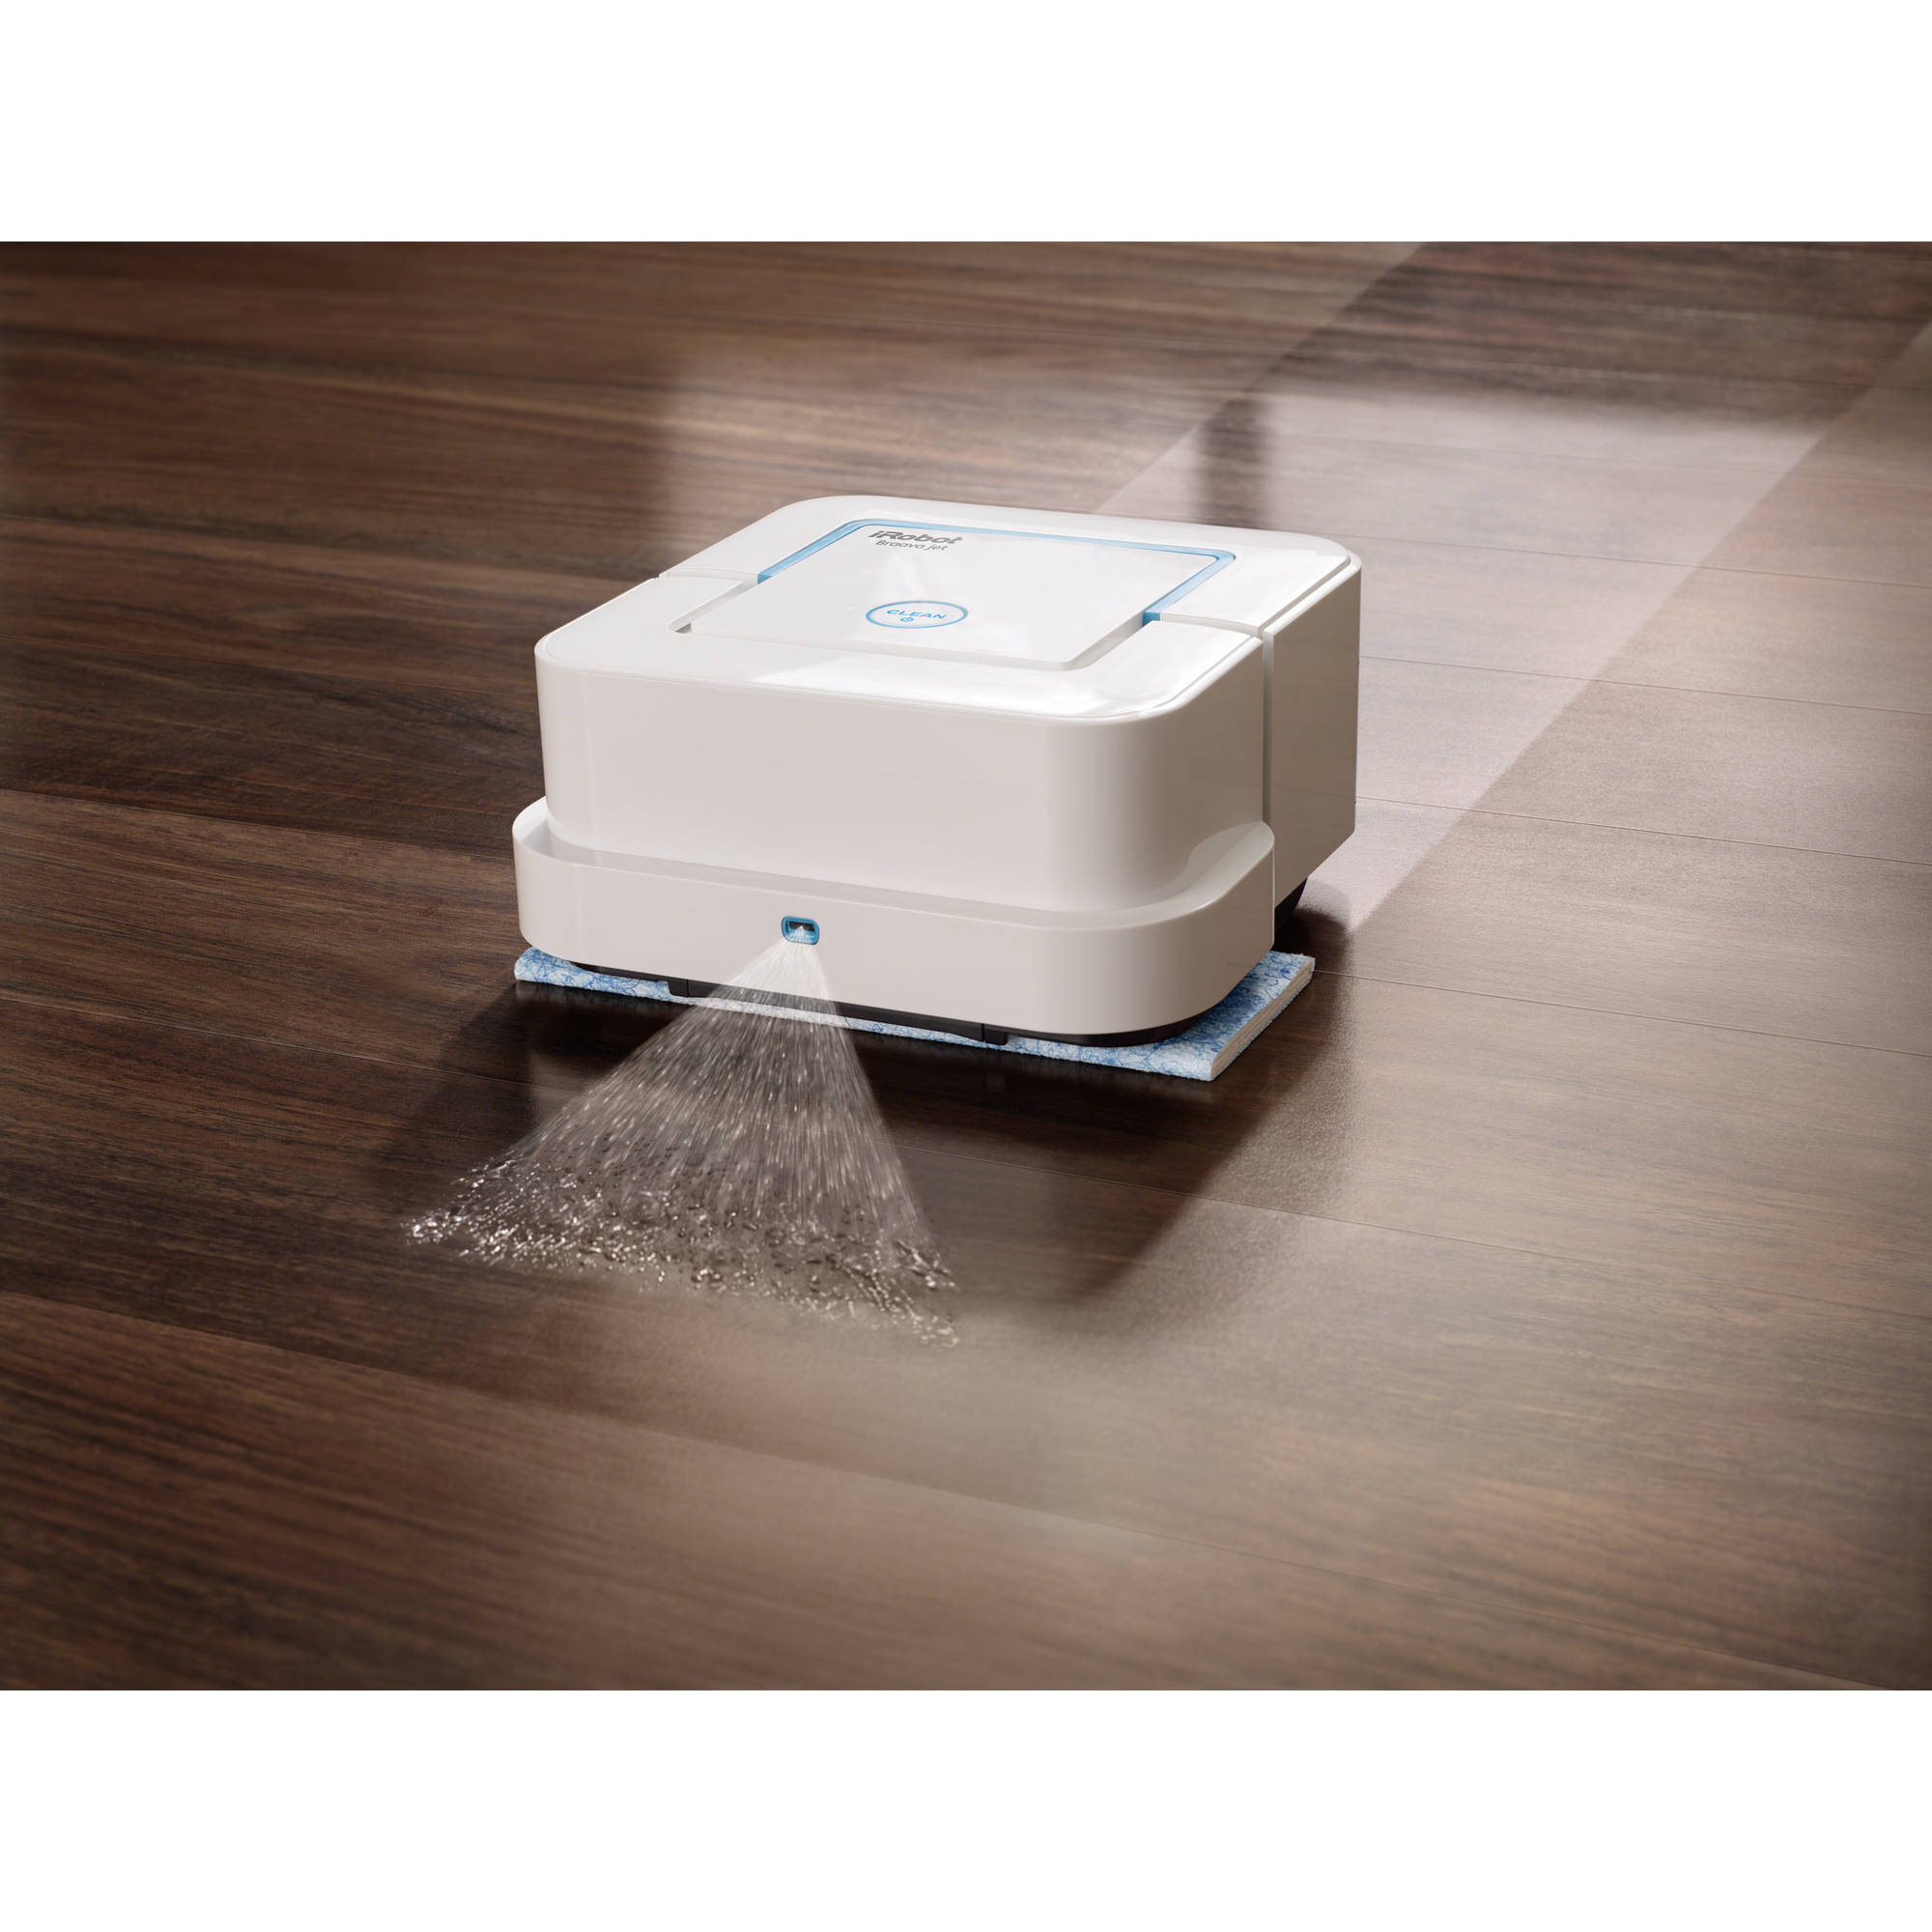 Irobot braava jet 245 mopping robot with manufacturers warranty extended battery life walmart com